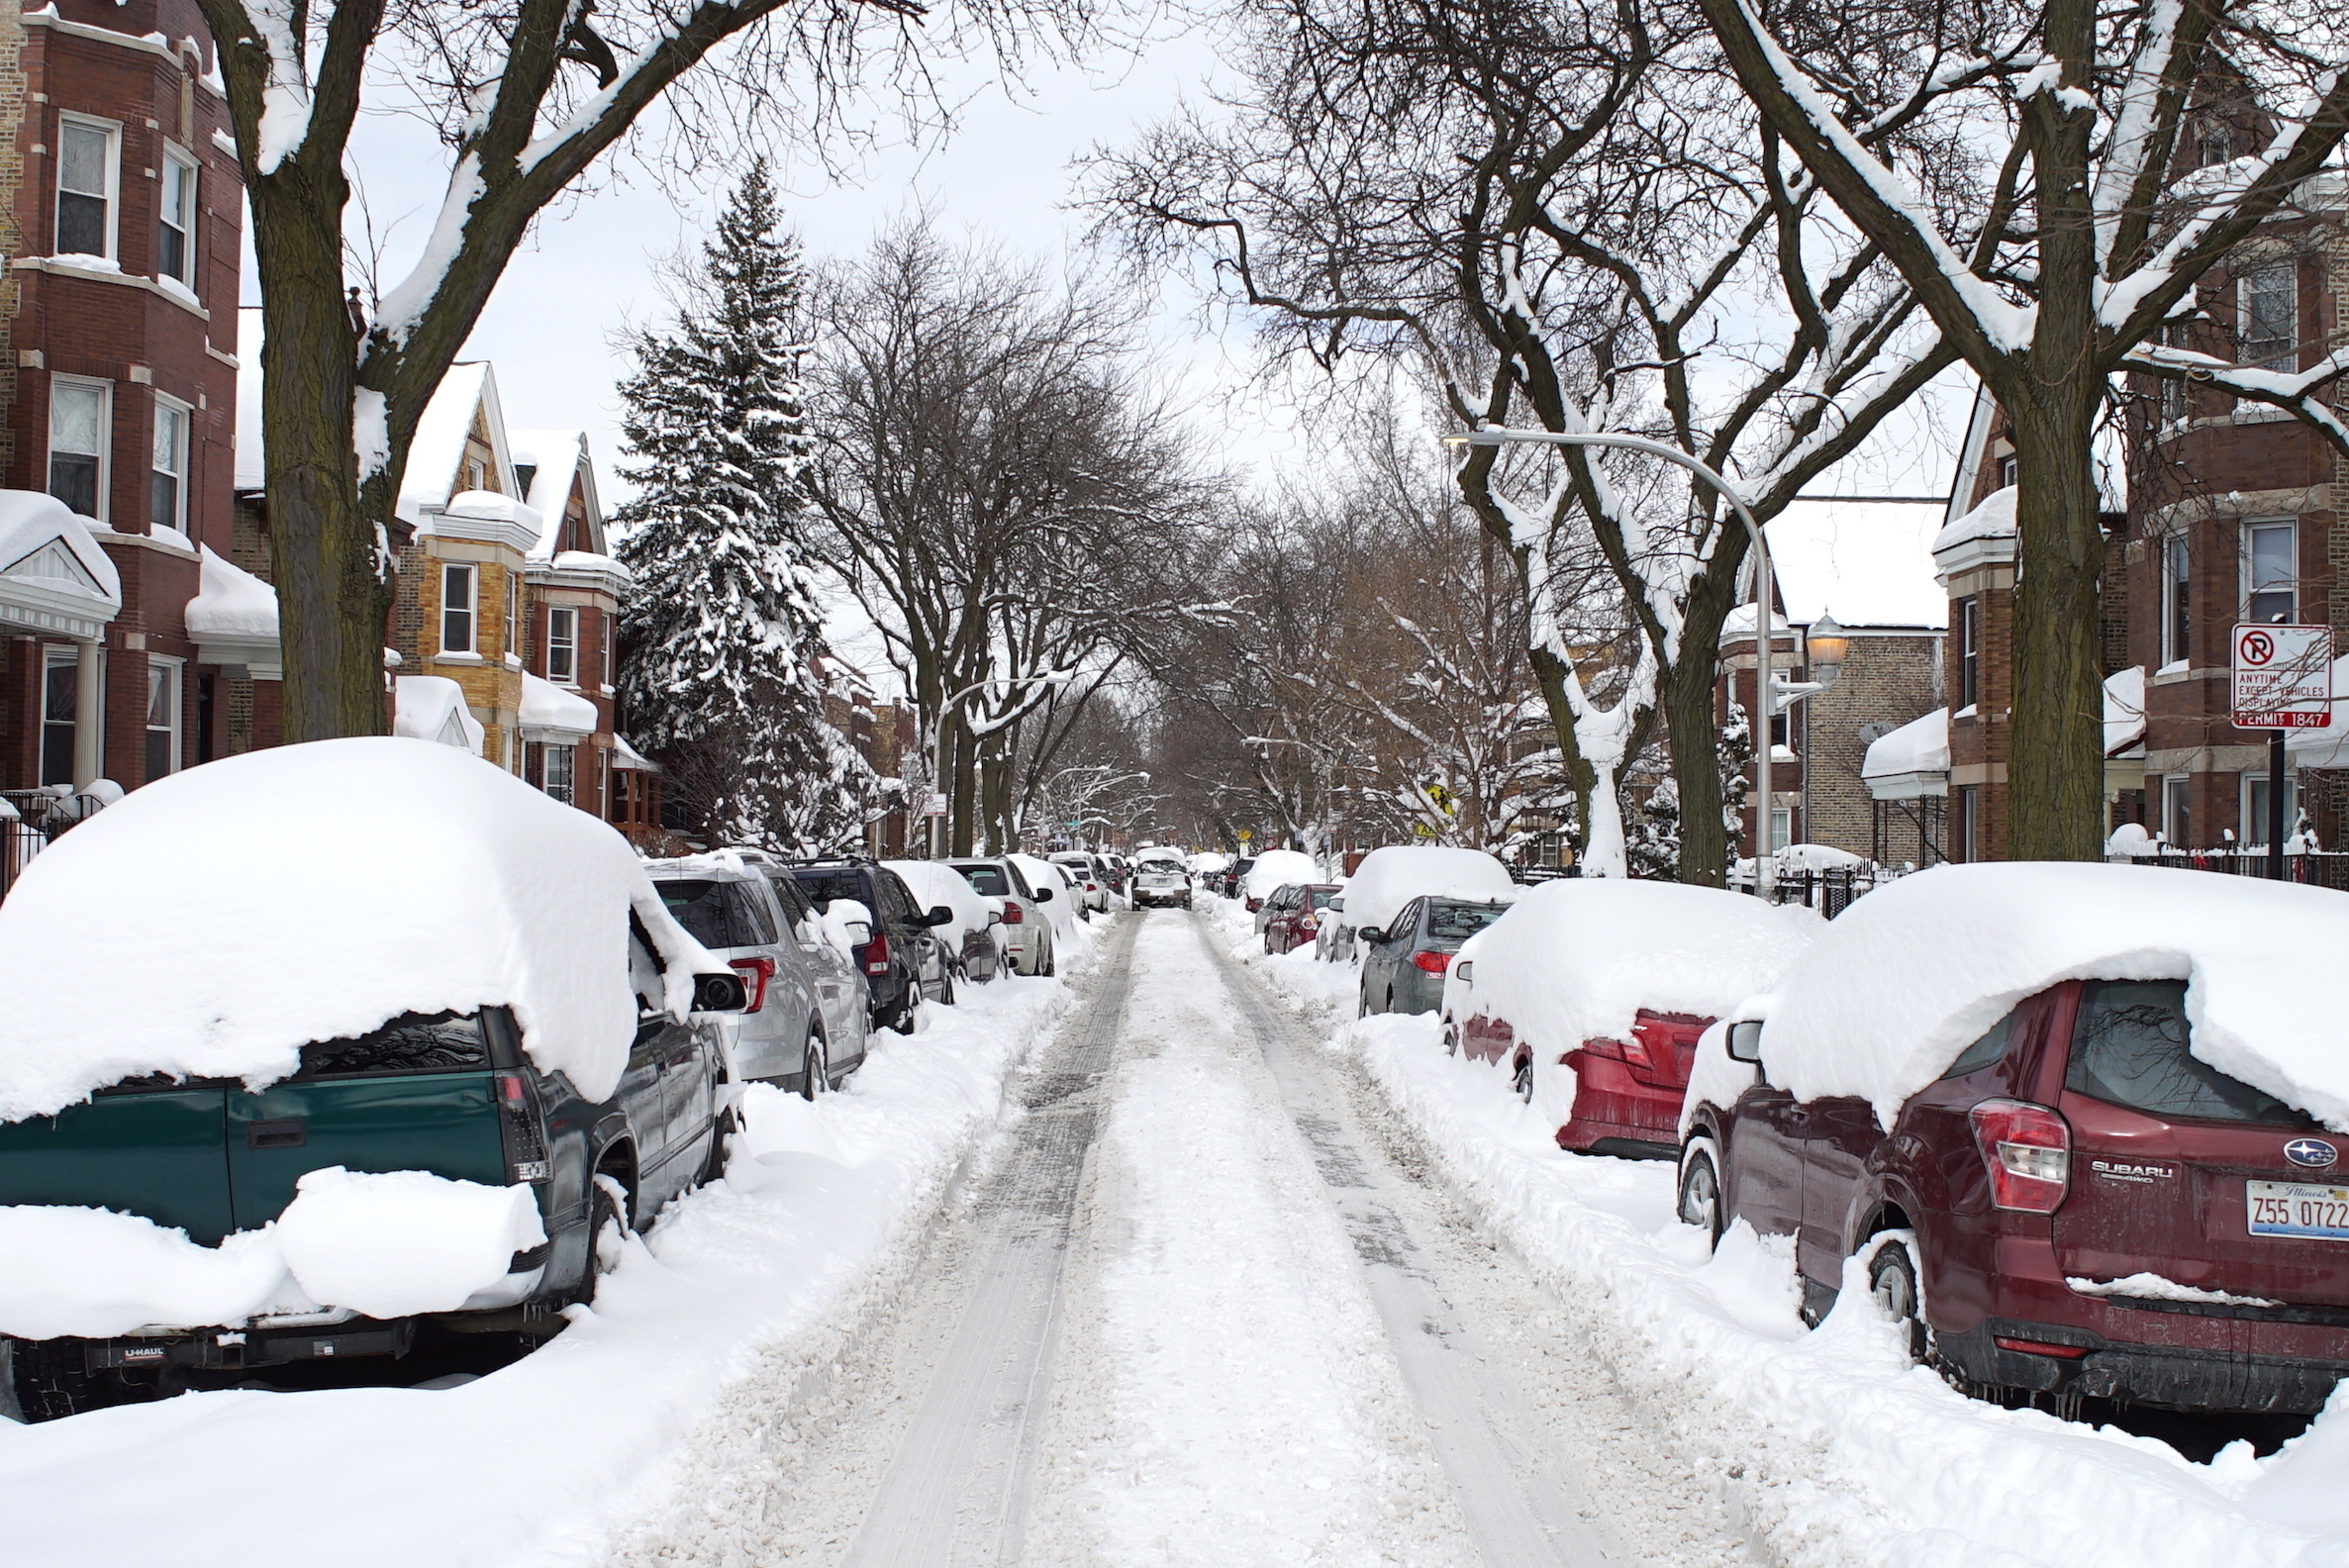 Believe it or not, Chicago is expected to get even more snow in the coming days